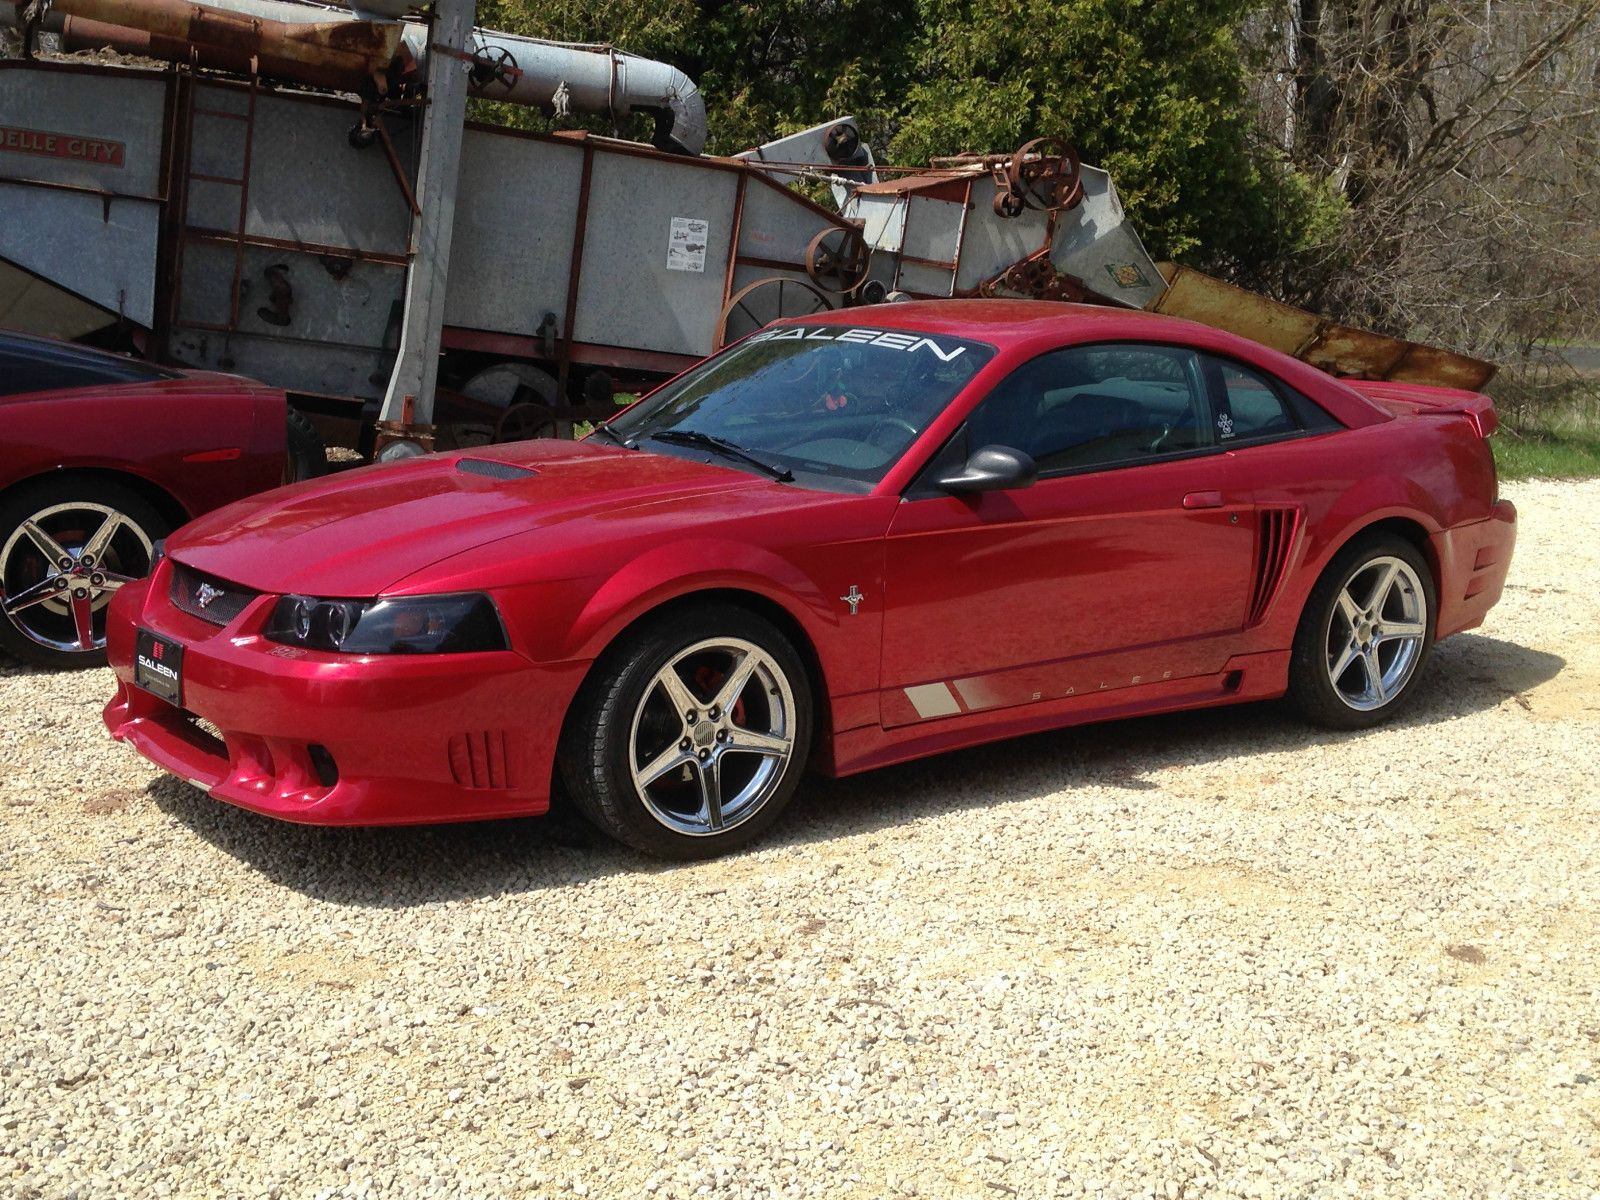 Car Brand Auctioned Ford Mustang Base Coupe 2 Door 2000 Car Model Ford Mustang Saleen Check More At Http Auctioncars Online Product Car Brand Auctioned Ford